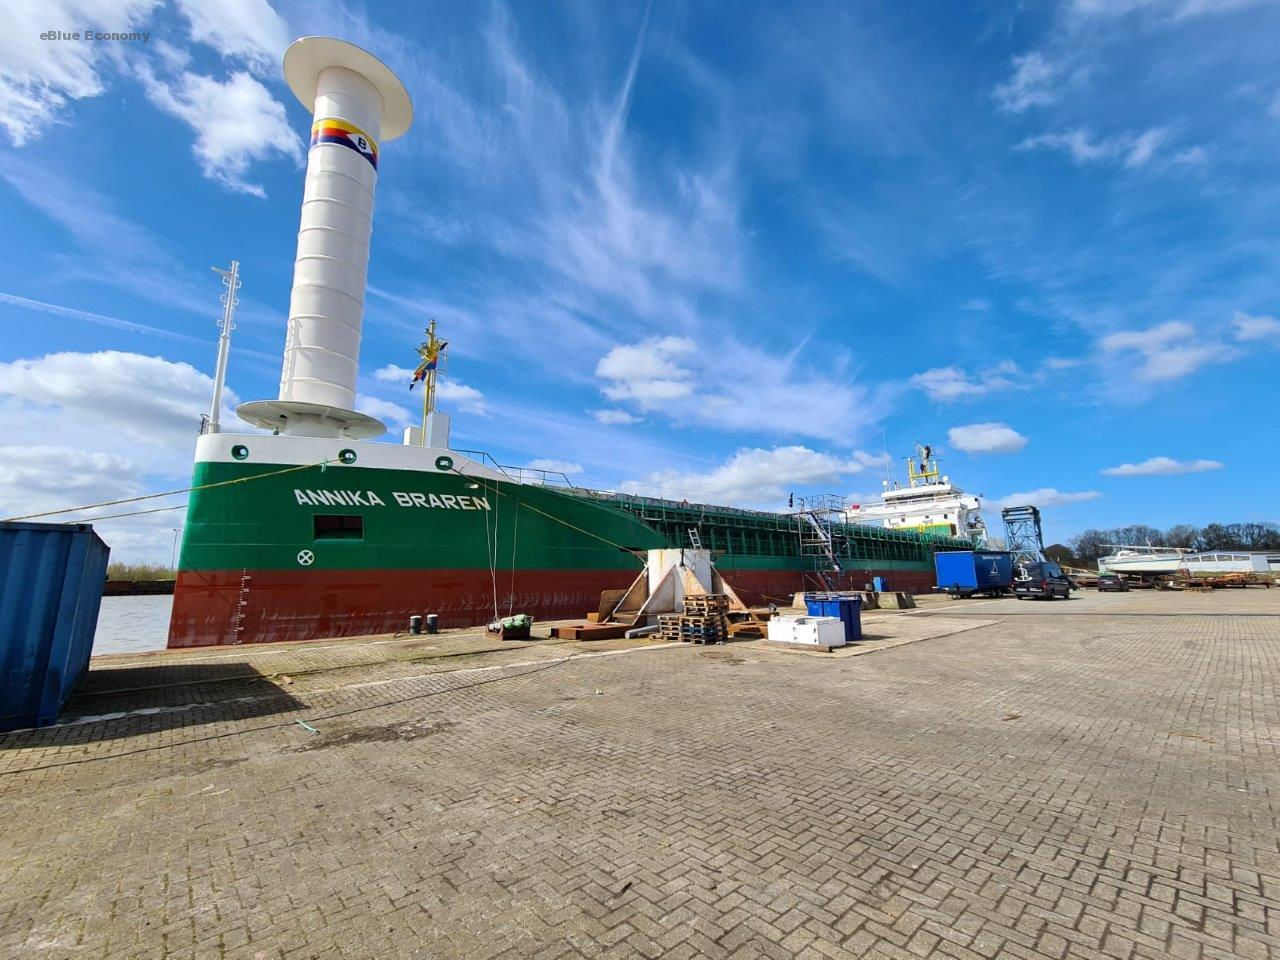 eBlue_economy_North Sea Region Adds a New Wind-Assist Rotor Installed Vessel to the Fleet